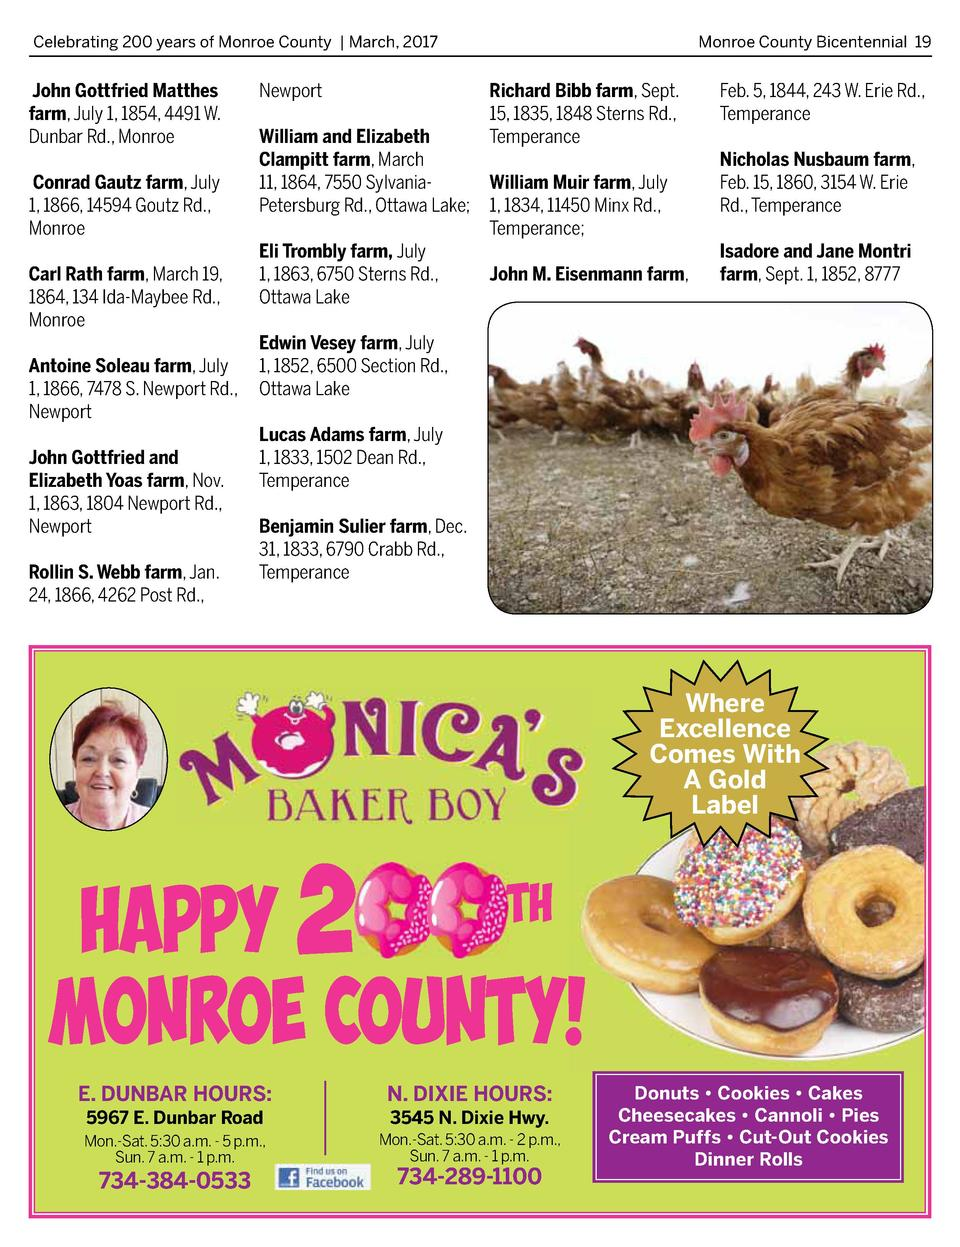 Celebrating 200 years of Monroe County   March, 2017   John Gottfried Matthes farm, July 1, 1854, 4491 W. Dunbar Rd., Monr...